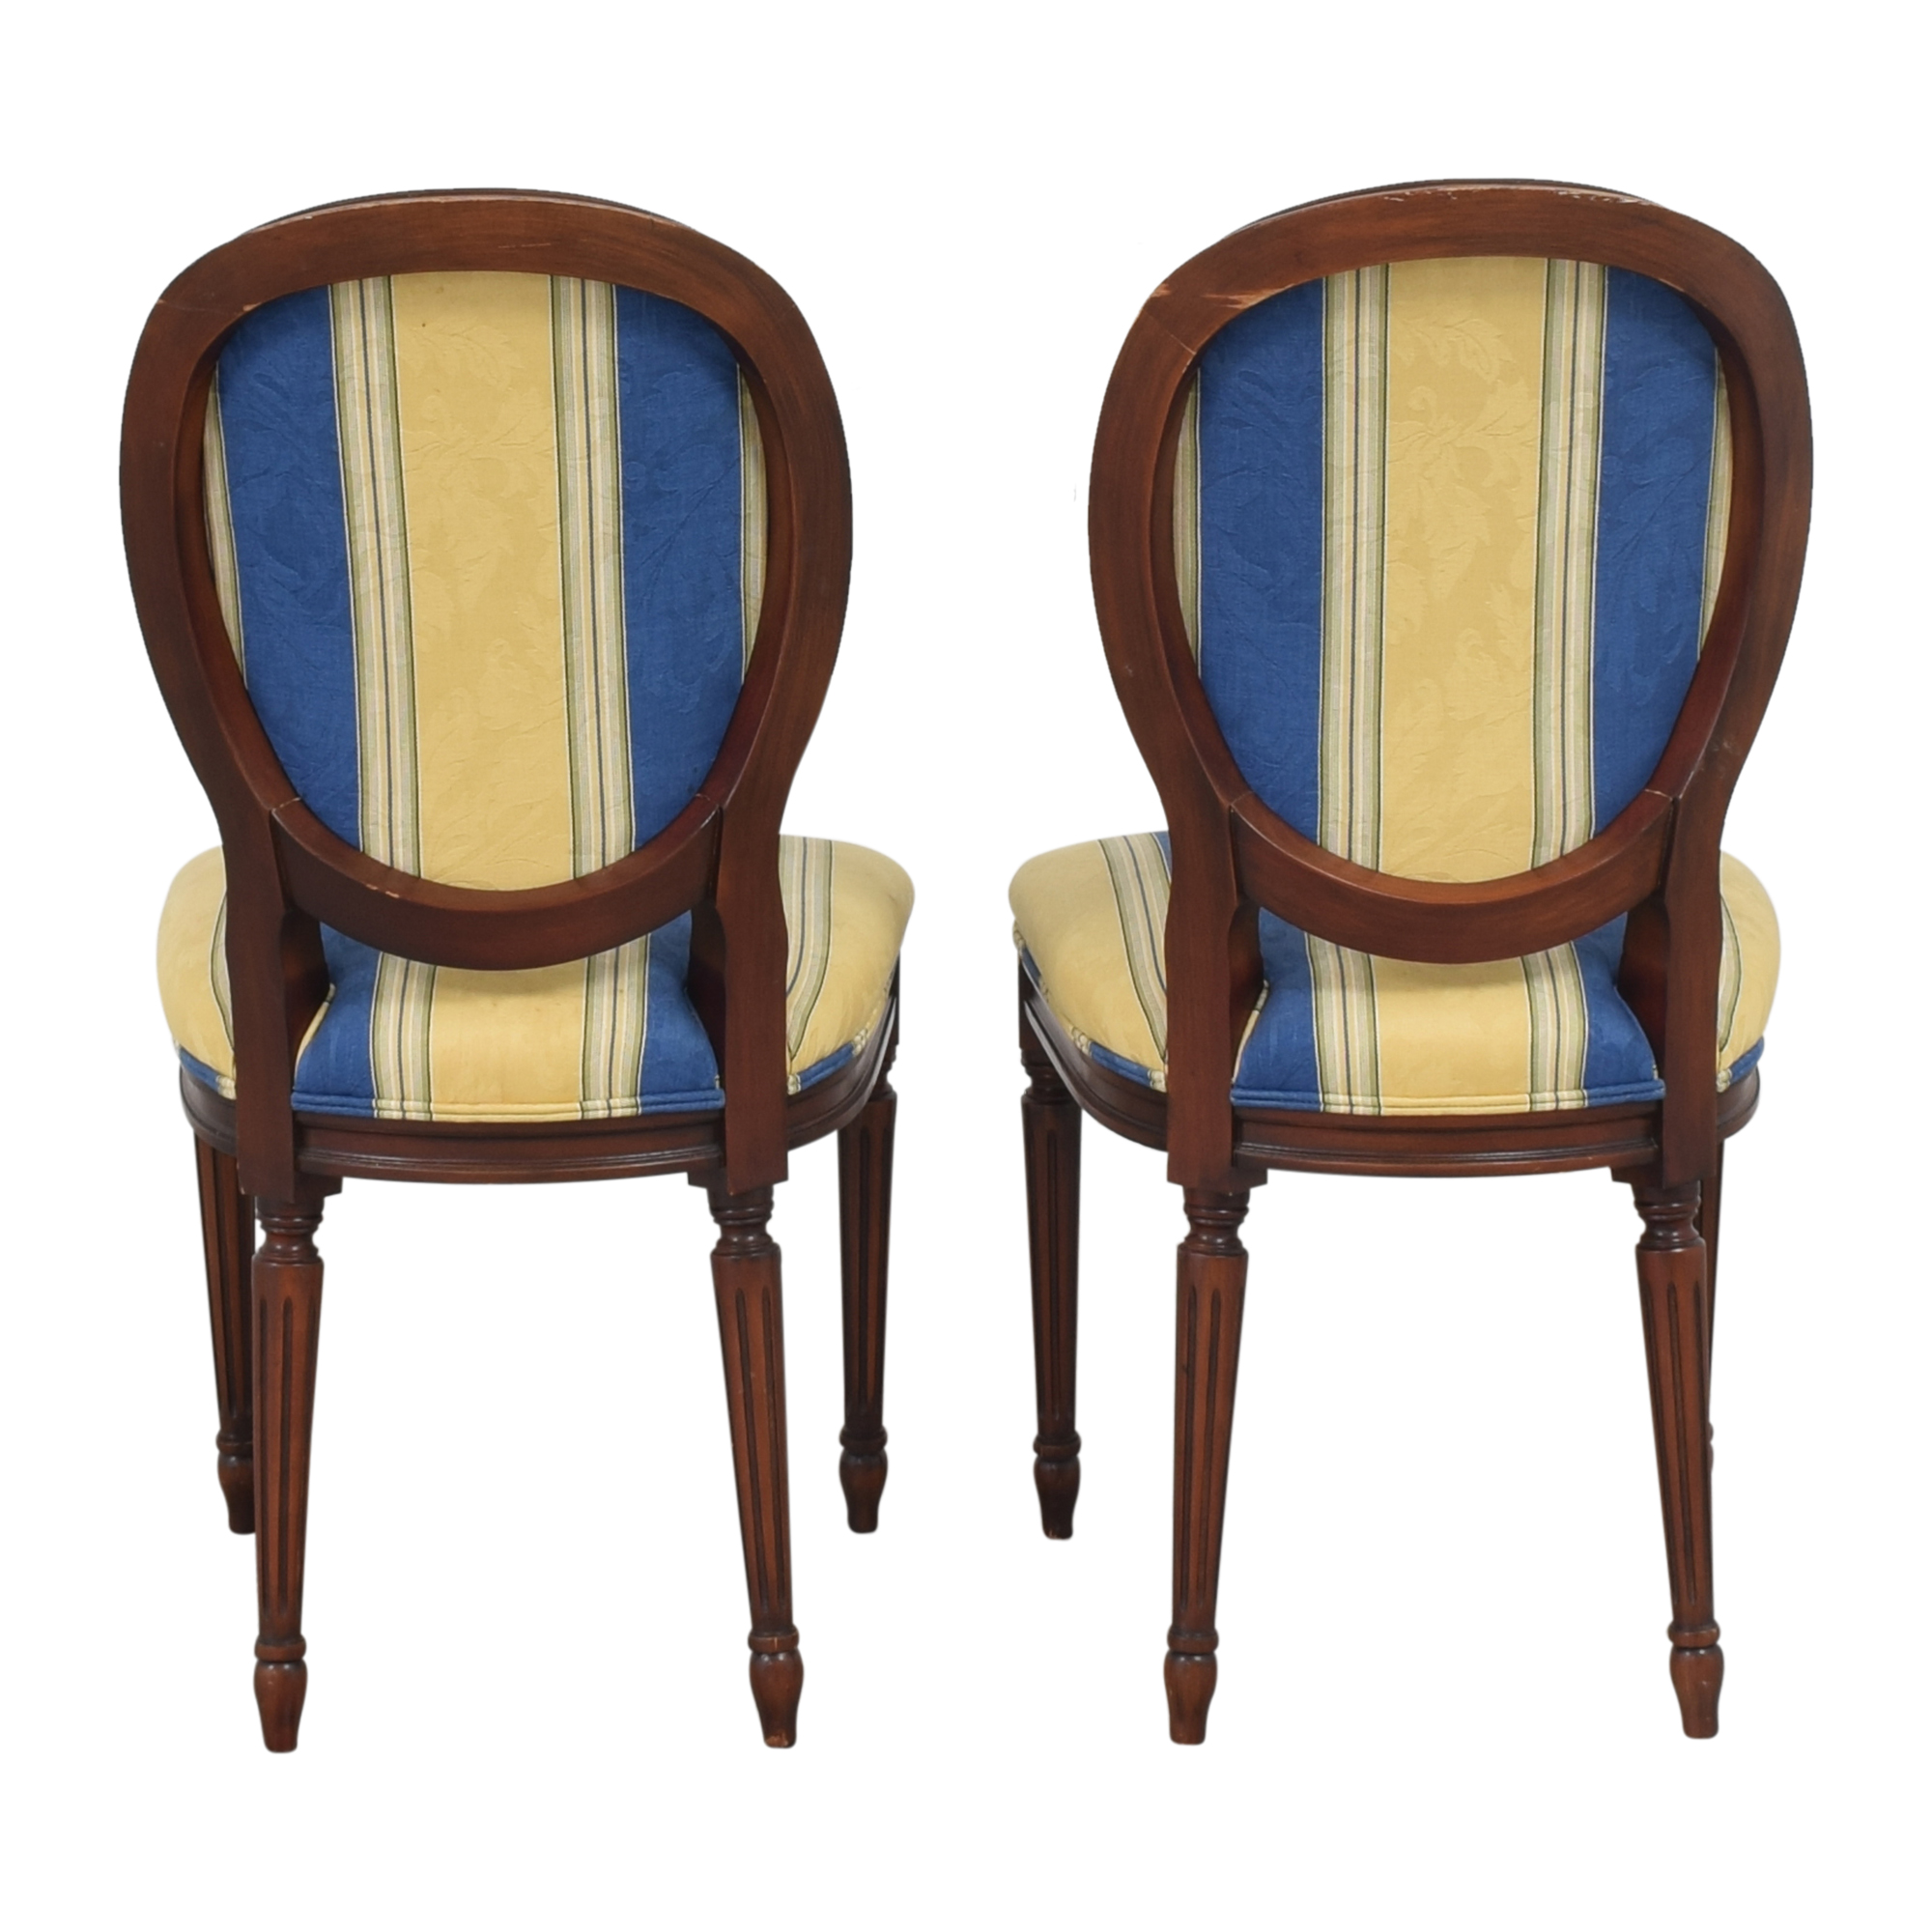 buy Calico Corners Striped Round Back Dining Side Chairs Calico